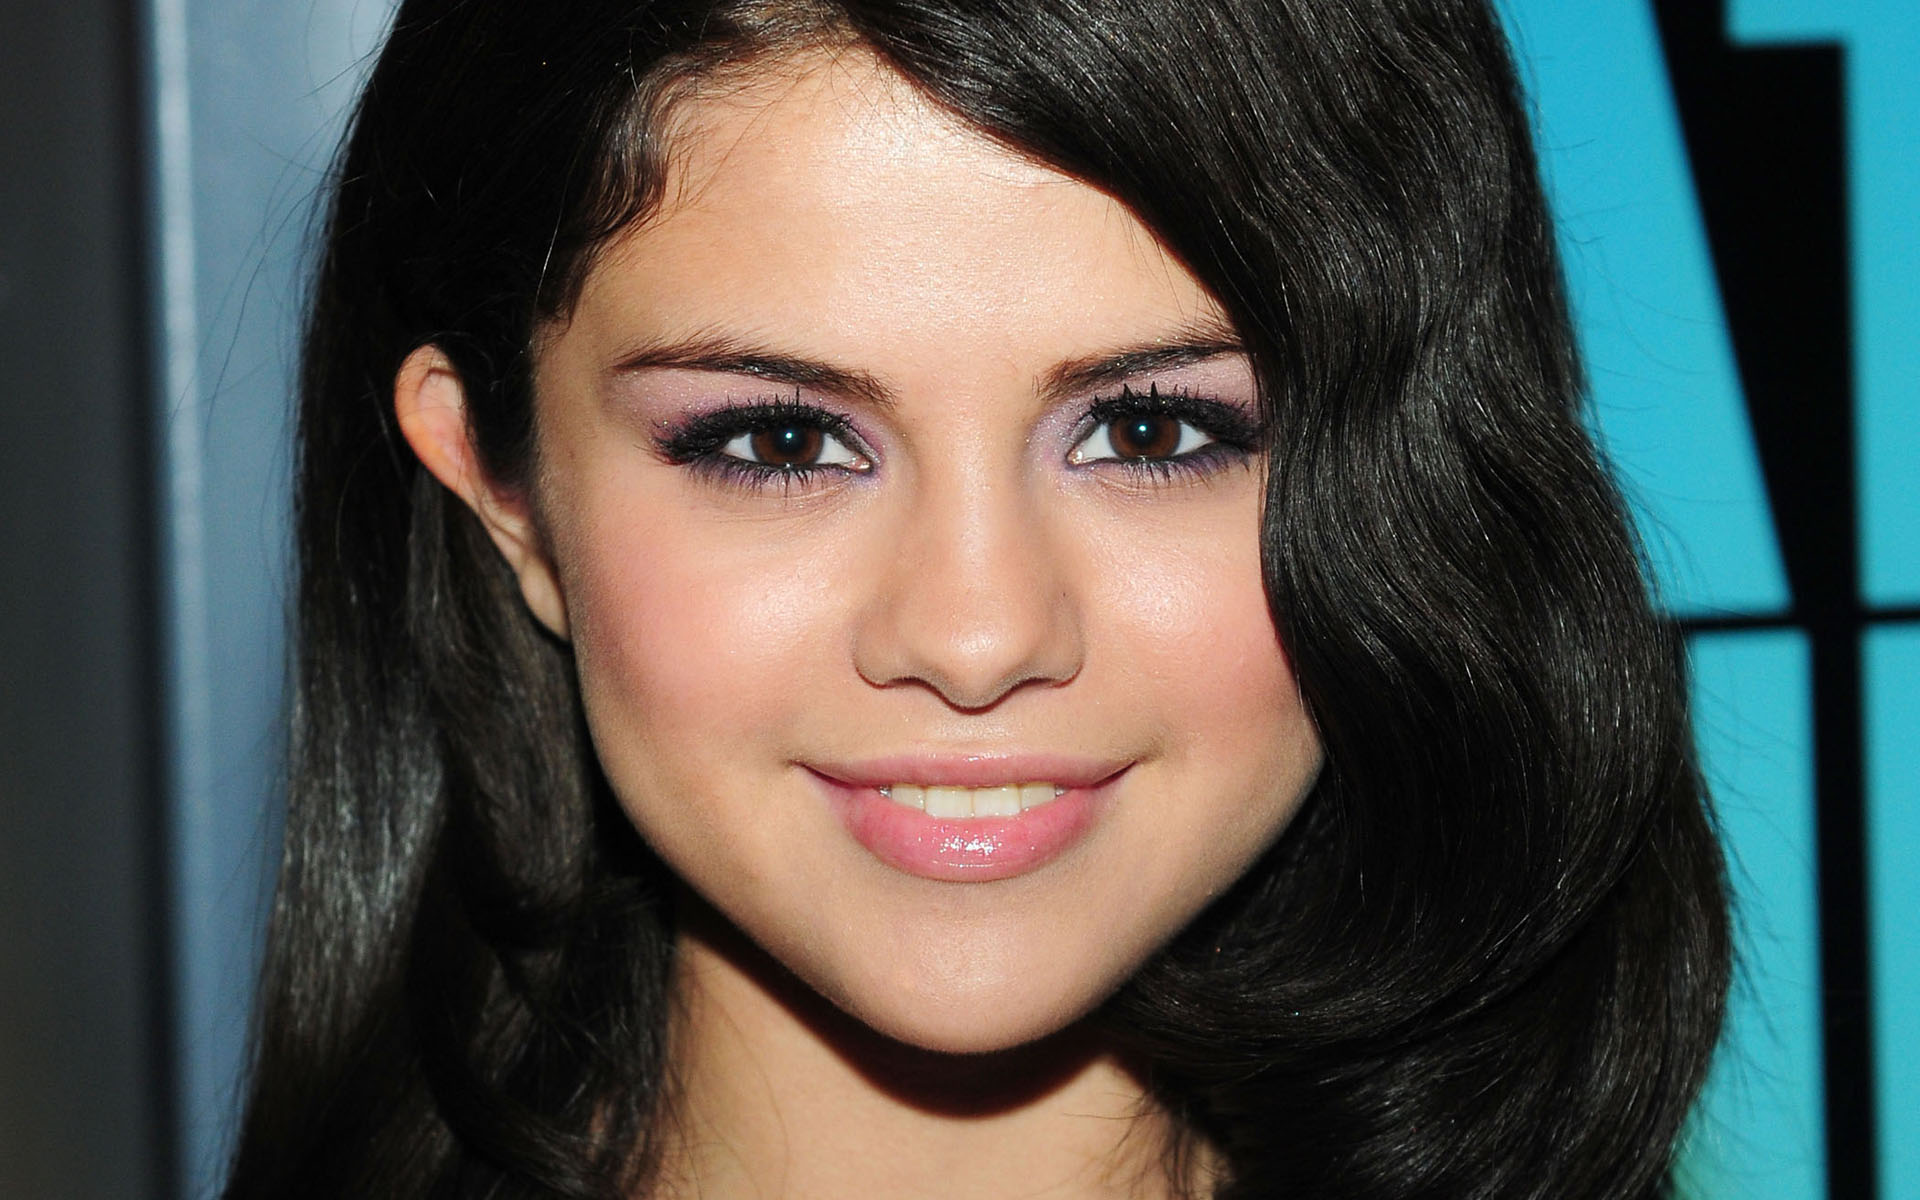 selena gomez | fashion designer biography